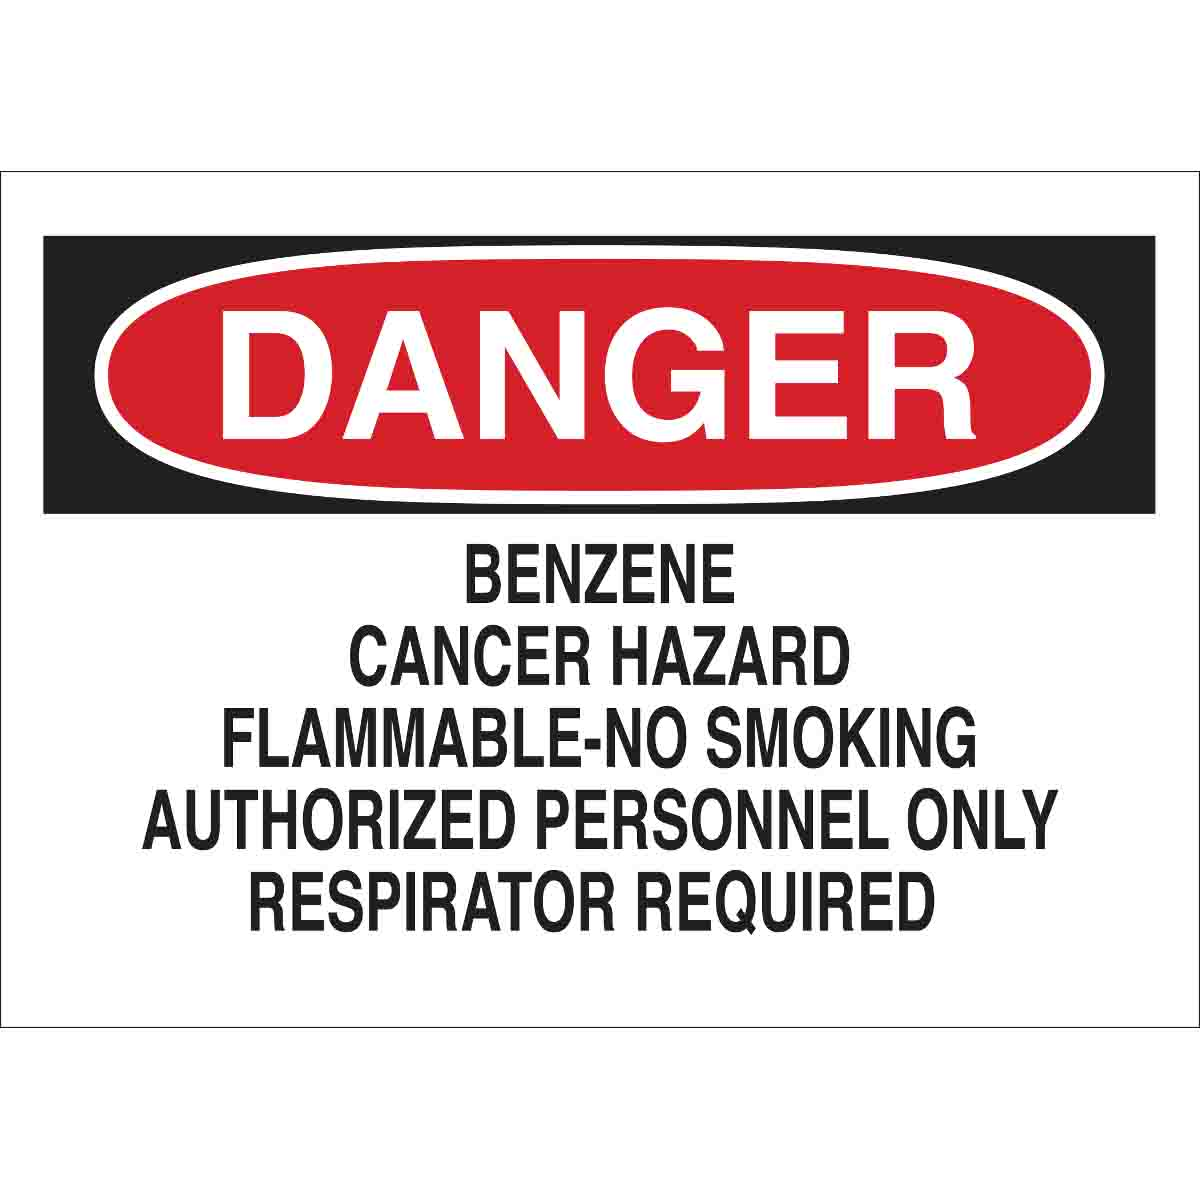 10 X 14 Danger Sign Legend Benzene Cancer Hazard Flammable No Smoking Authorized Personnel Only Respirator Required Brady 85444 Self Sticking Polyester